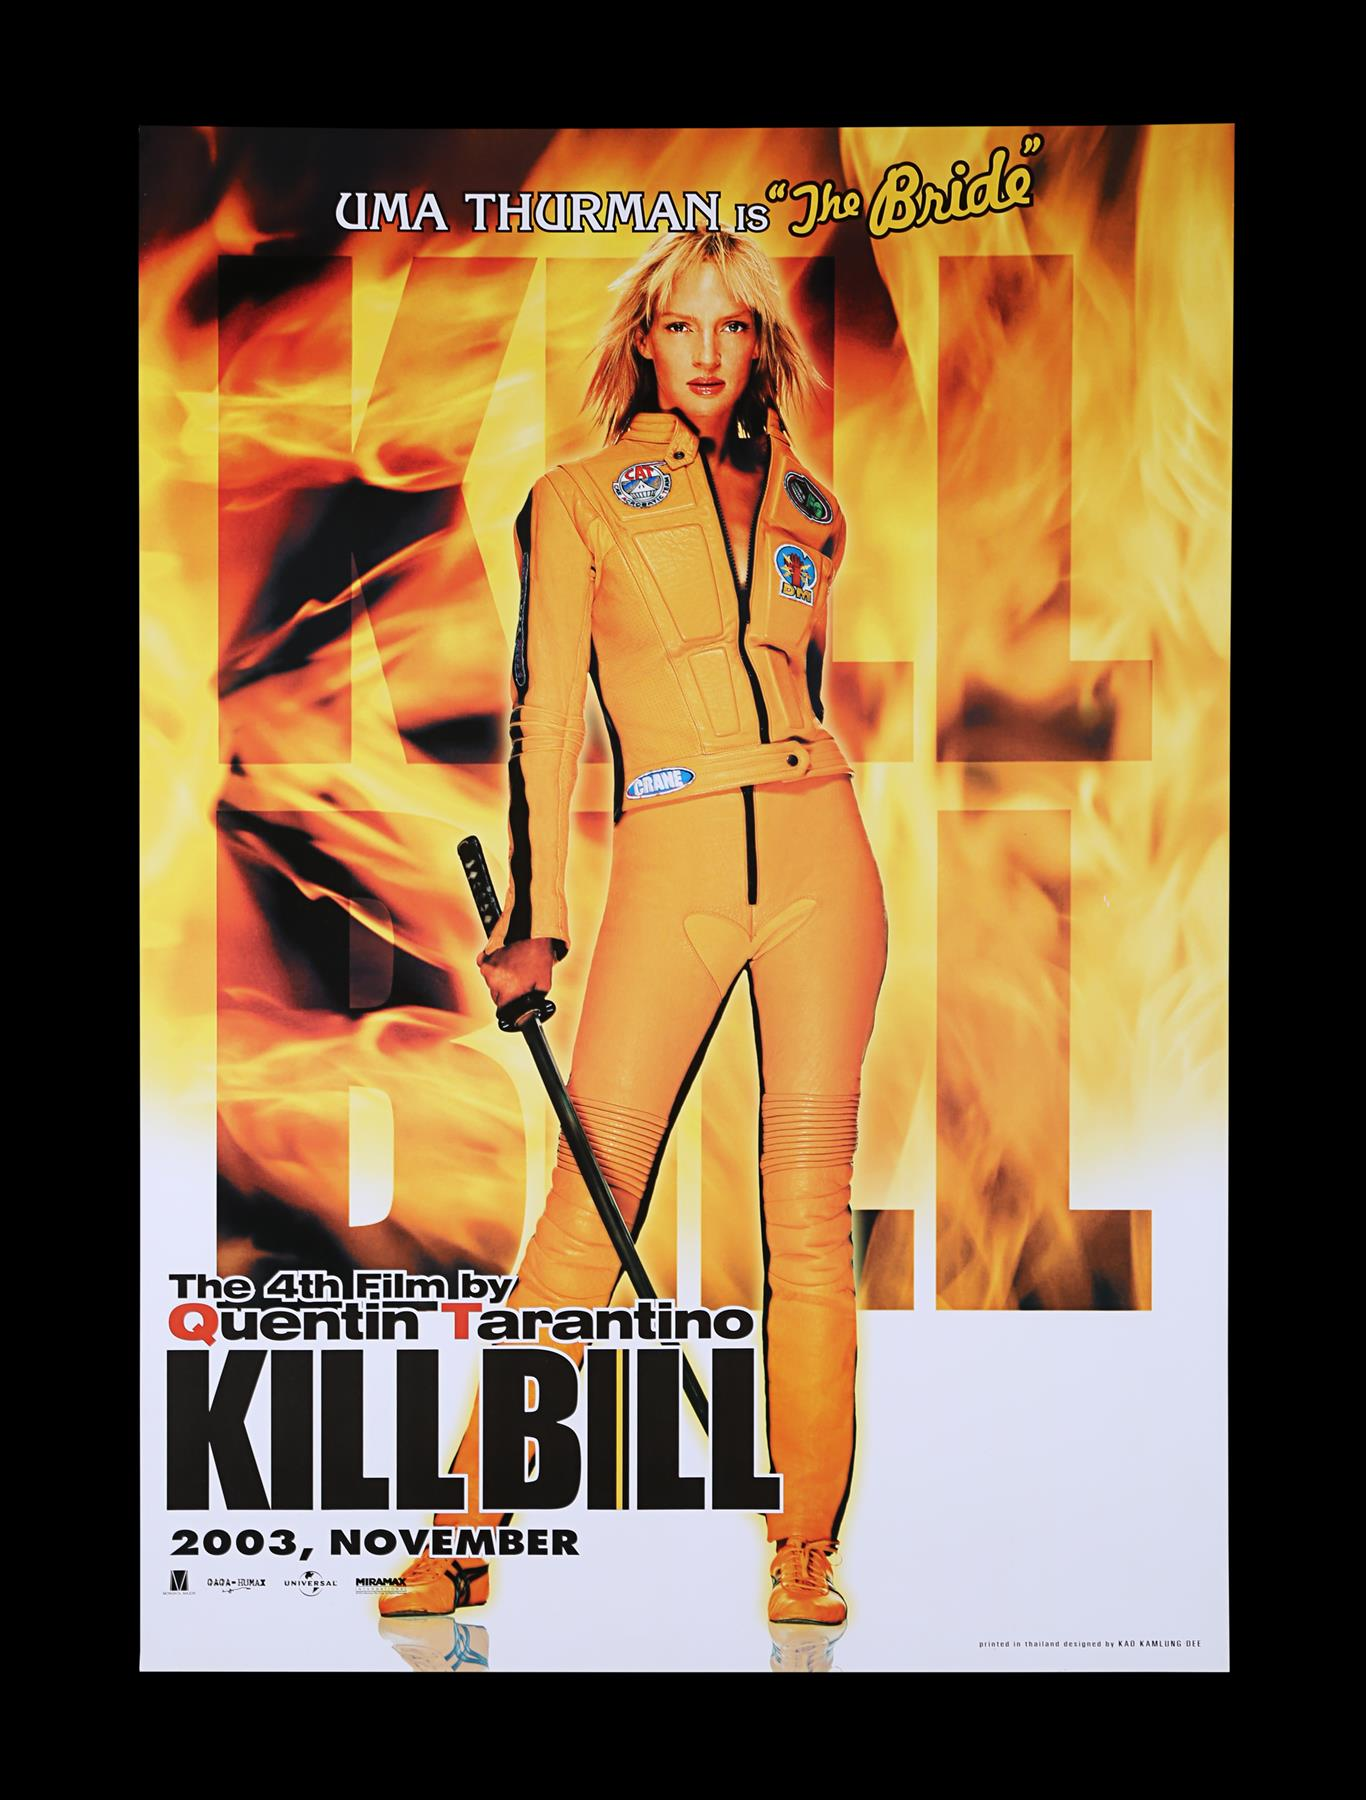 KILL BILL (2003) - US One-Sheet and Thai One-Sheet, 2003 - Image 3 of 10